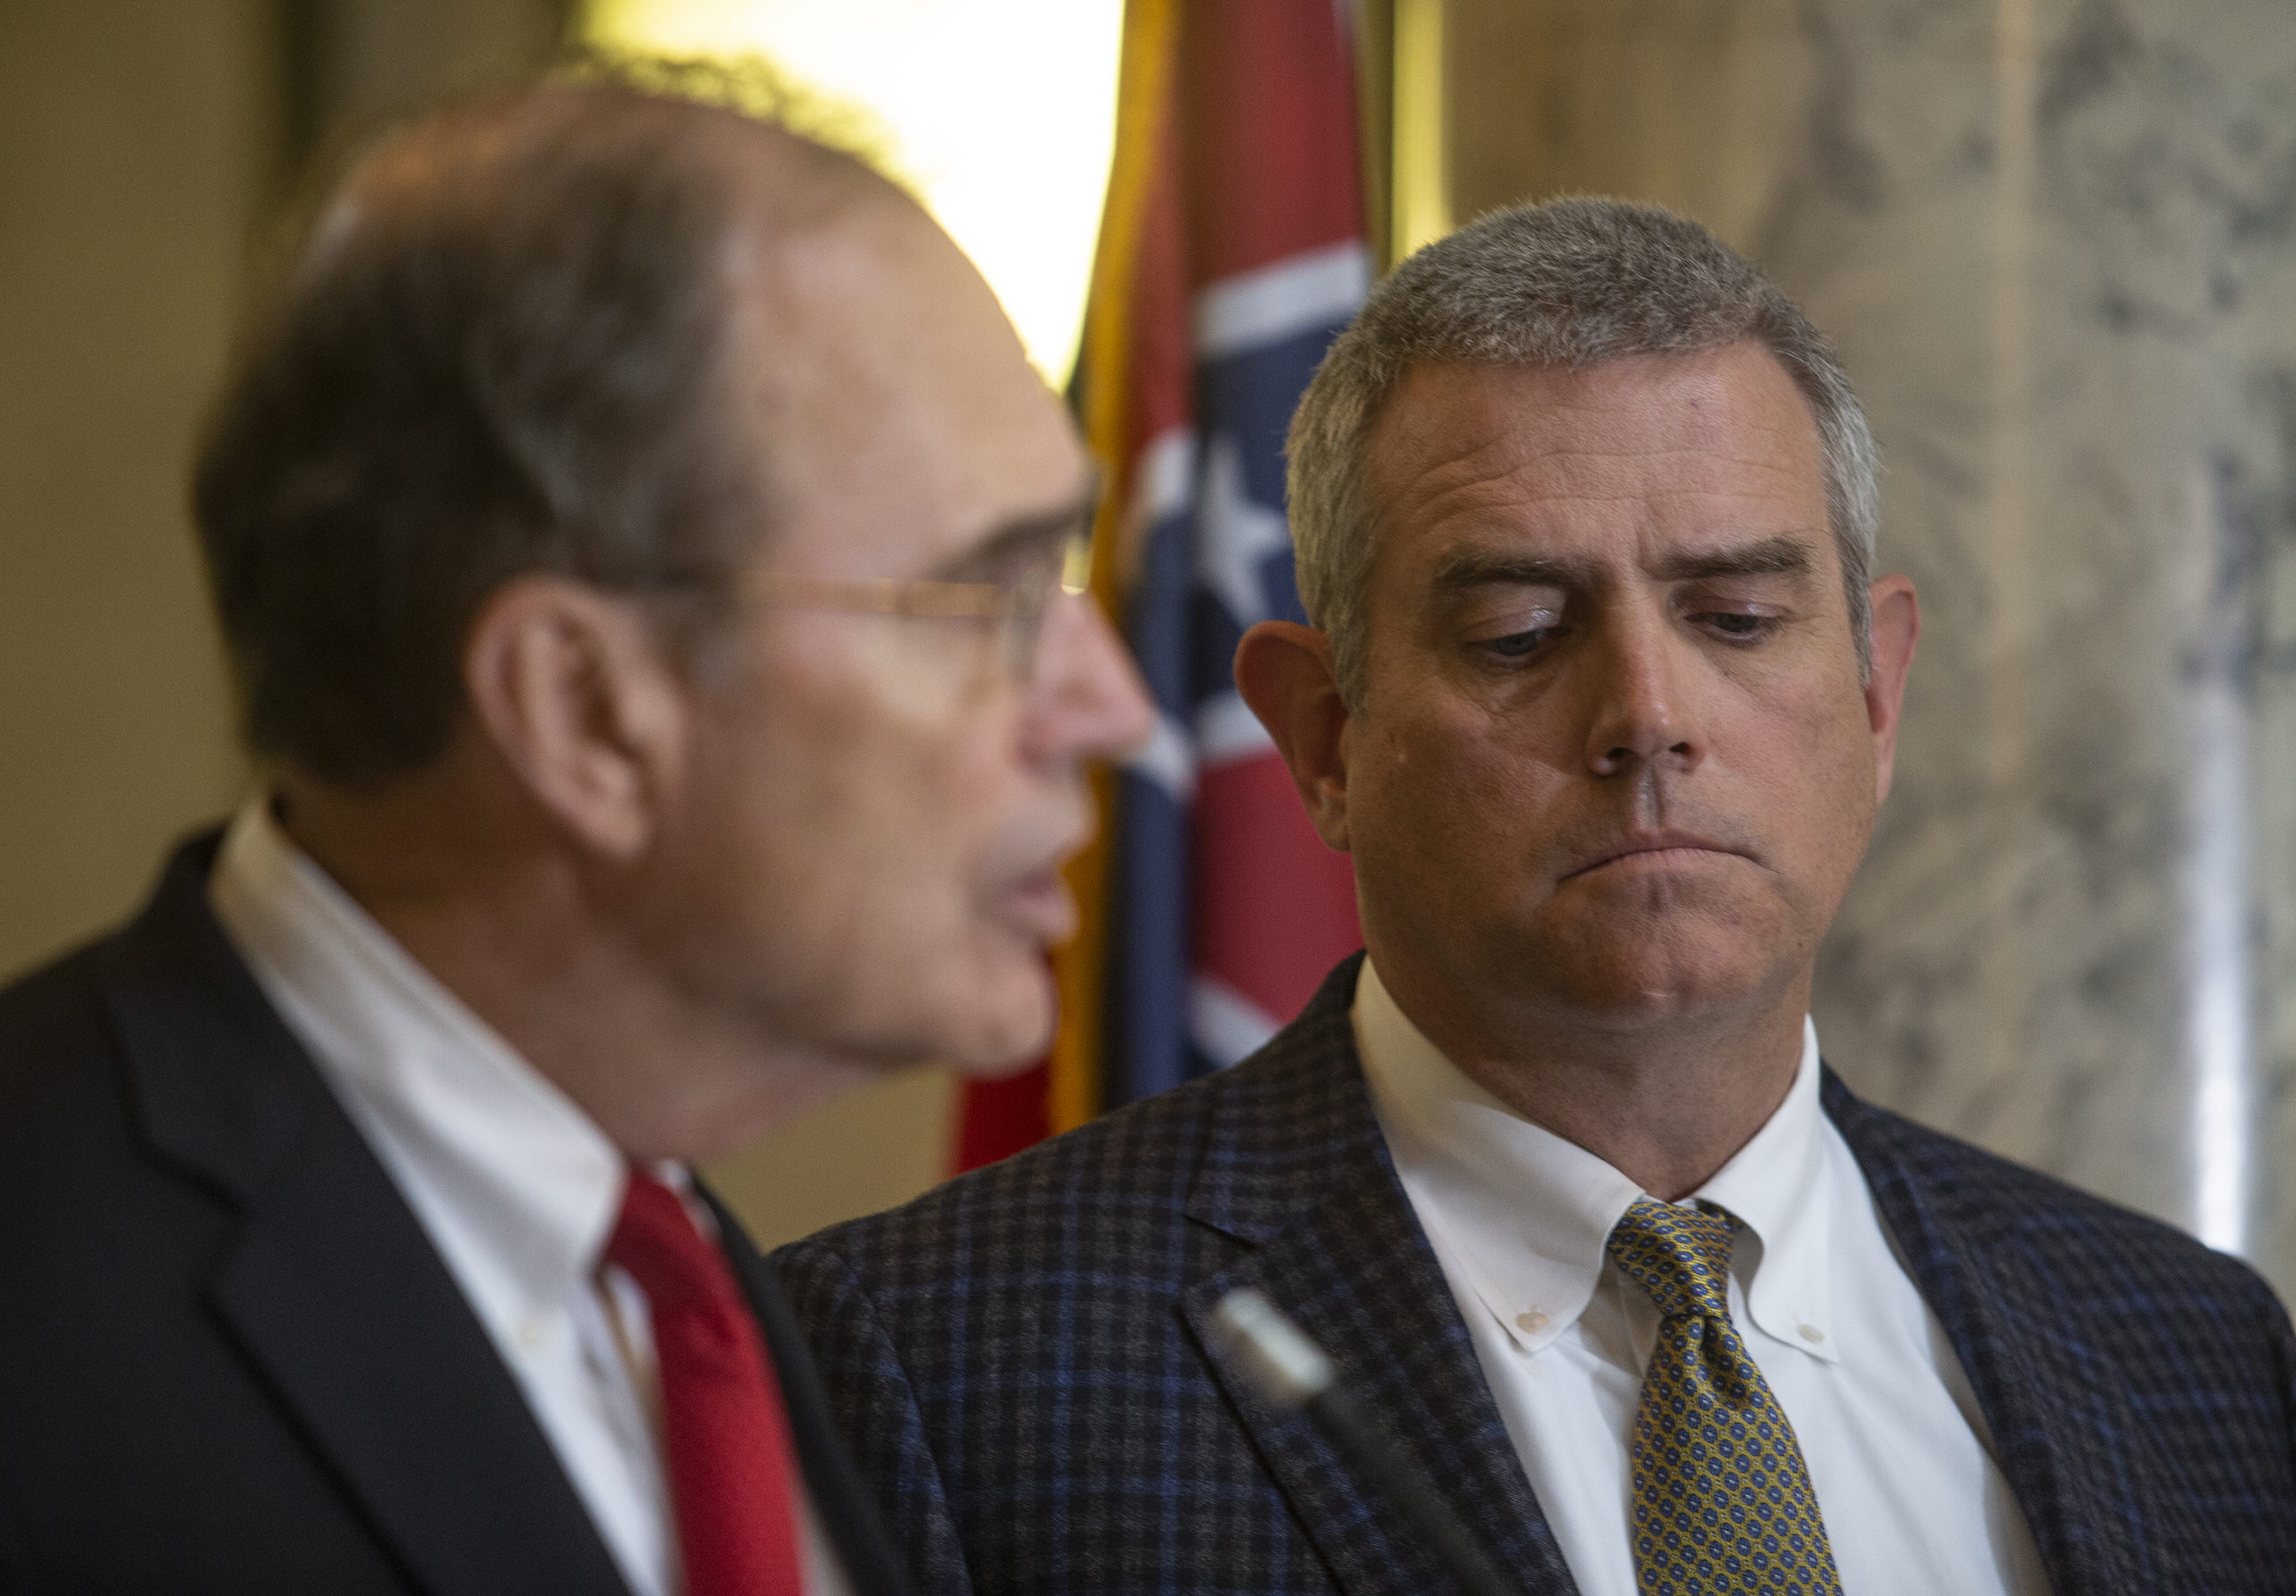 Mississippi teacher pay raise gets caught up in standoff over controversial tax proposal